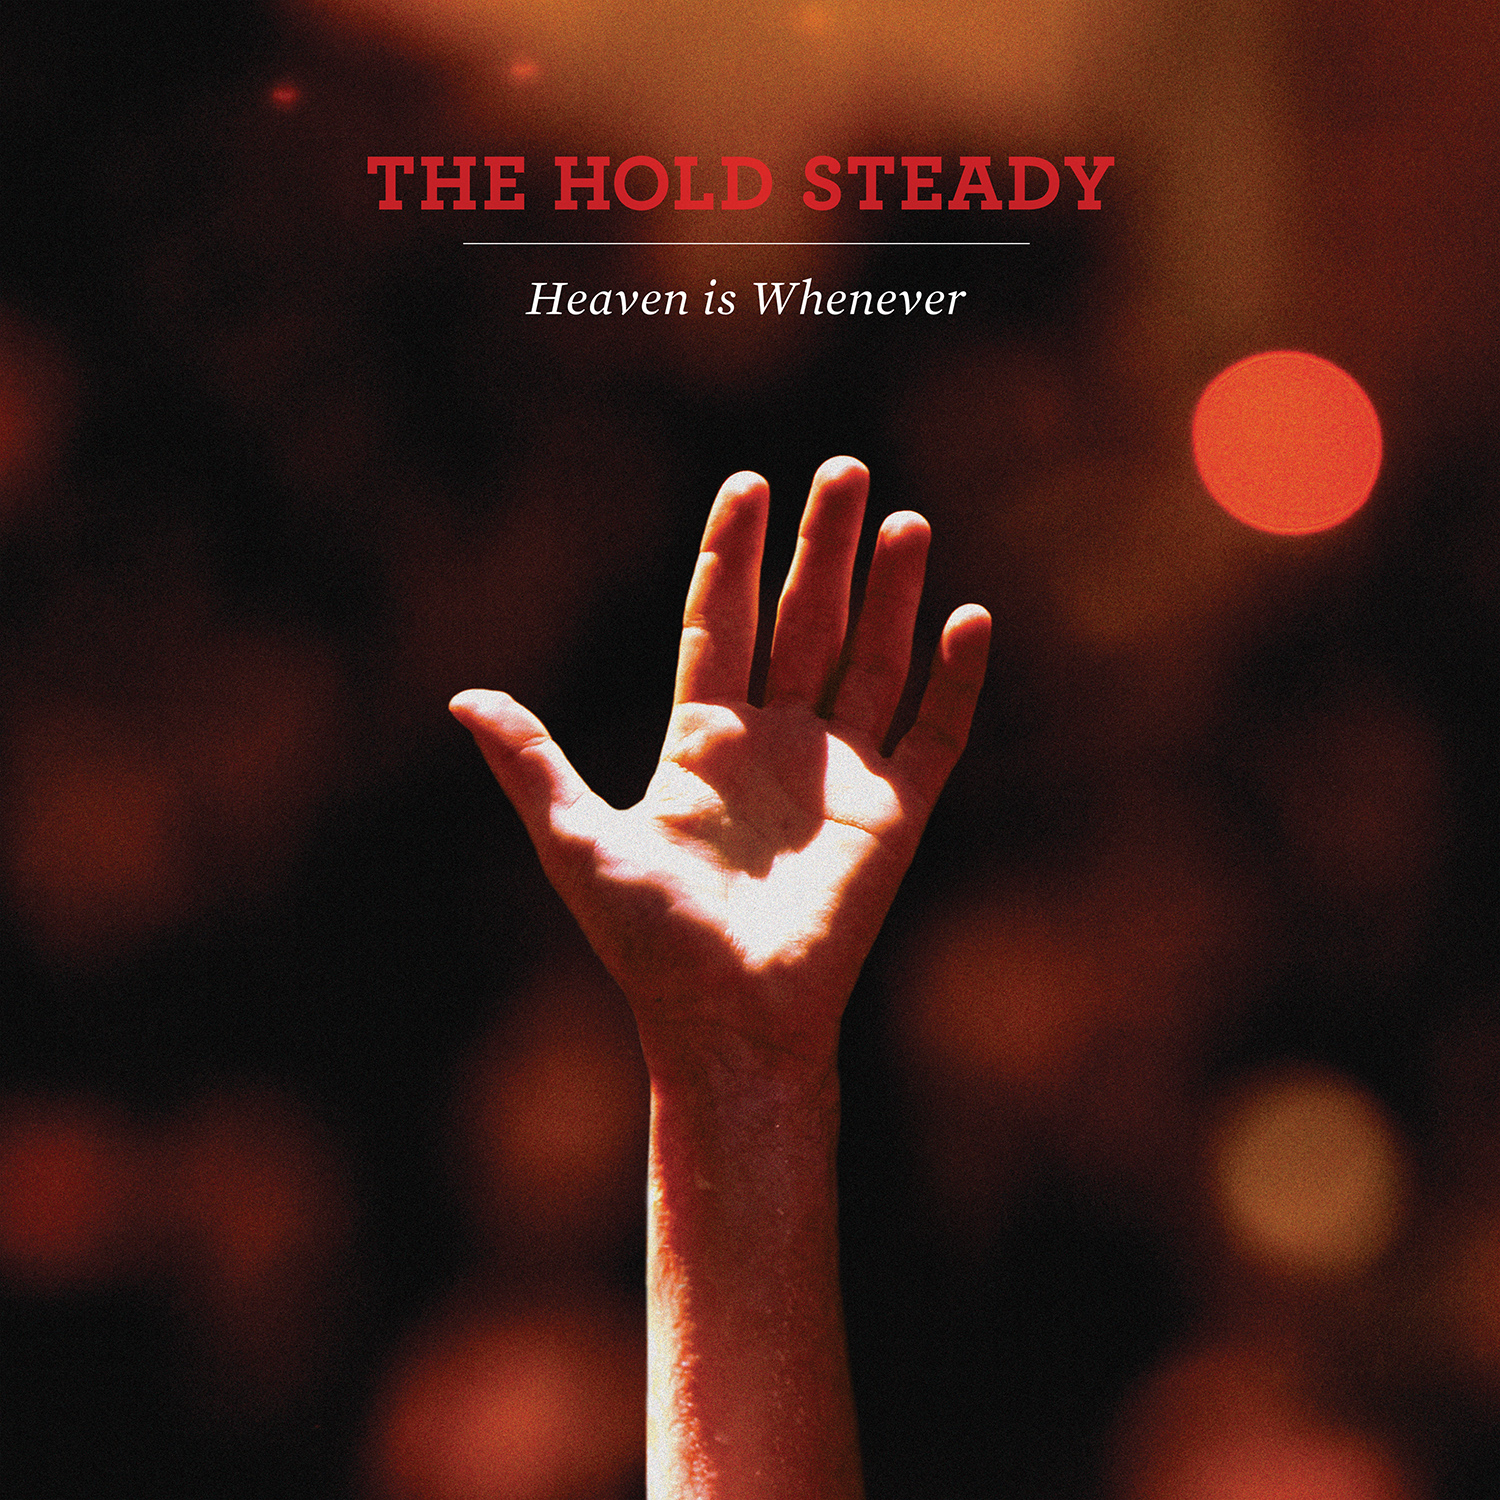 The Hold Steady - Heaven is Whenever [Red LP]